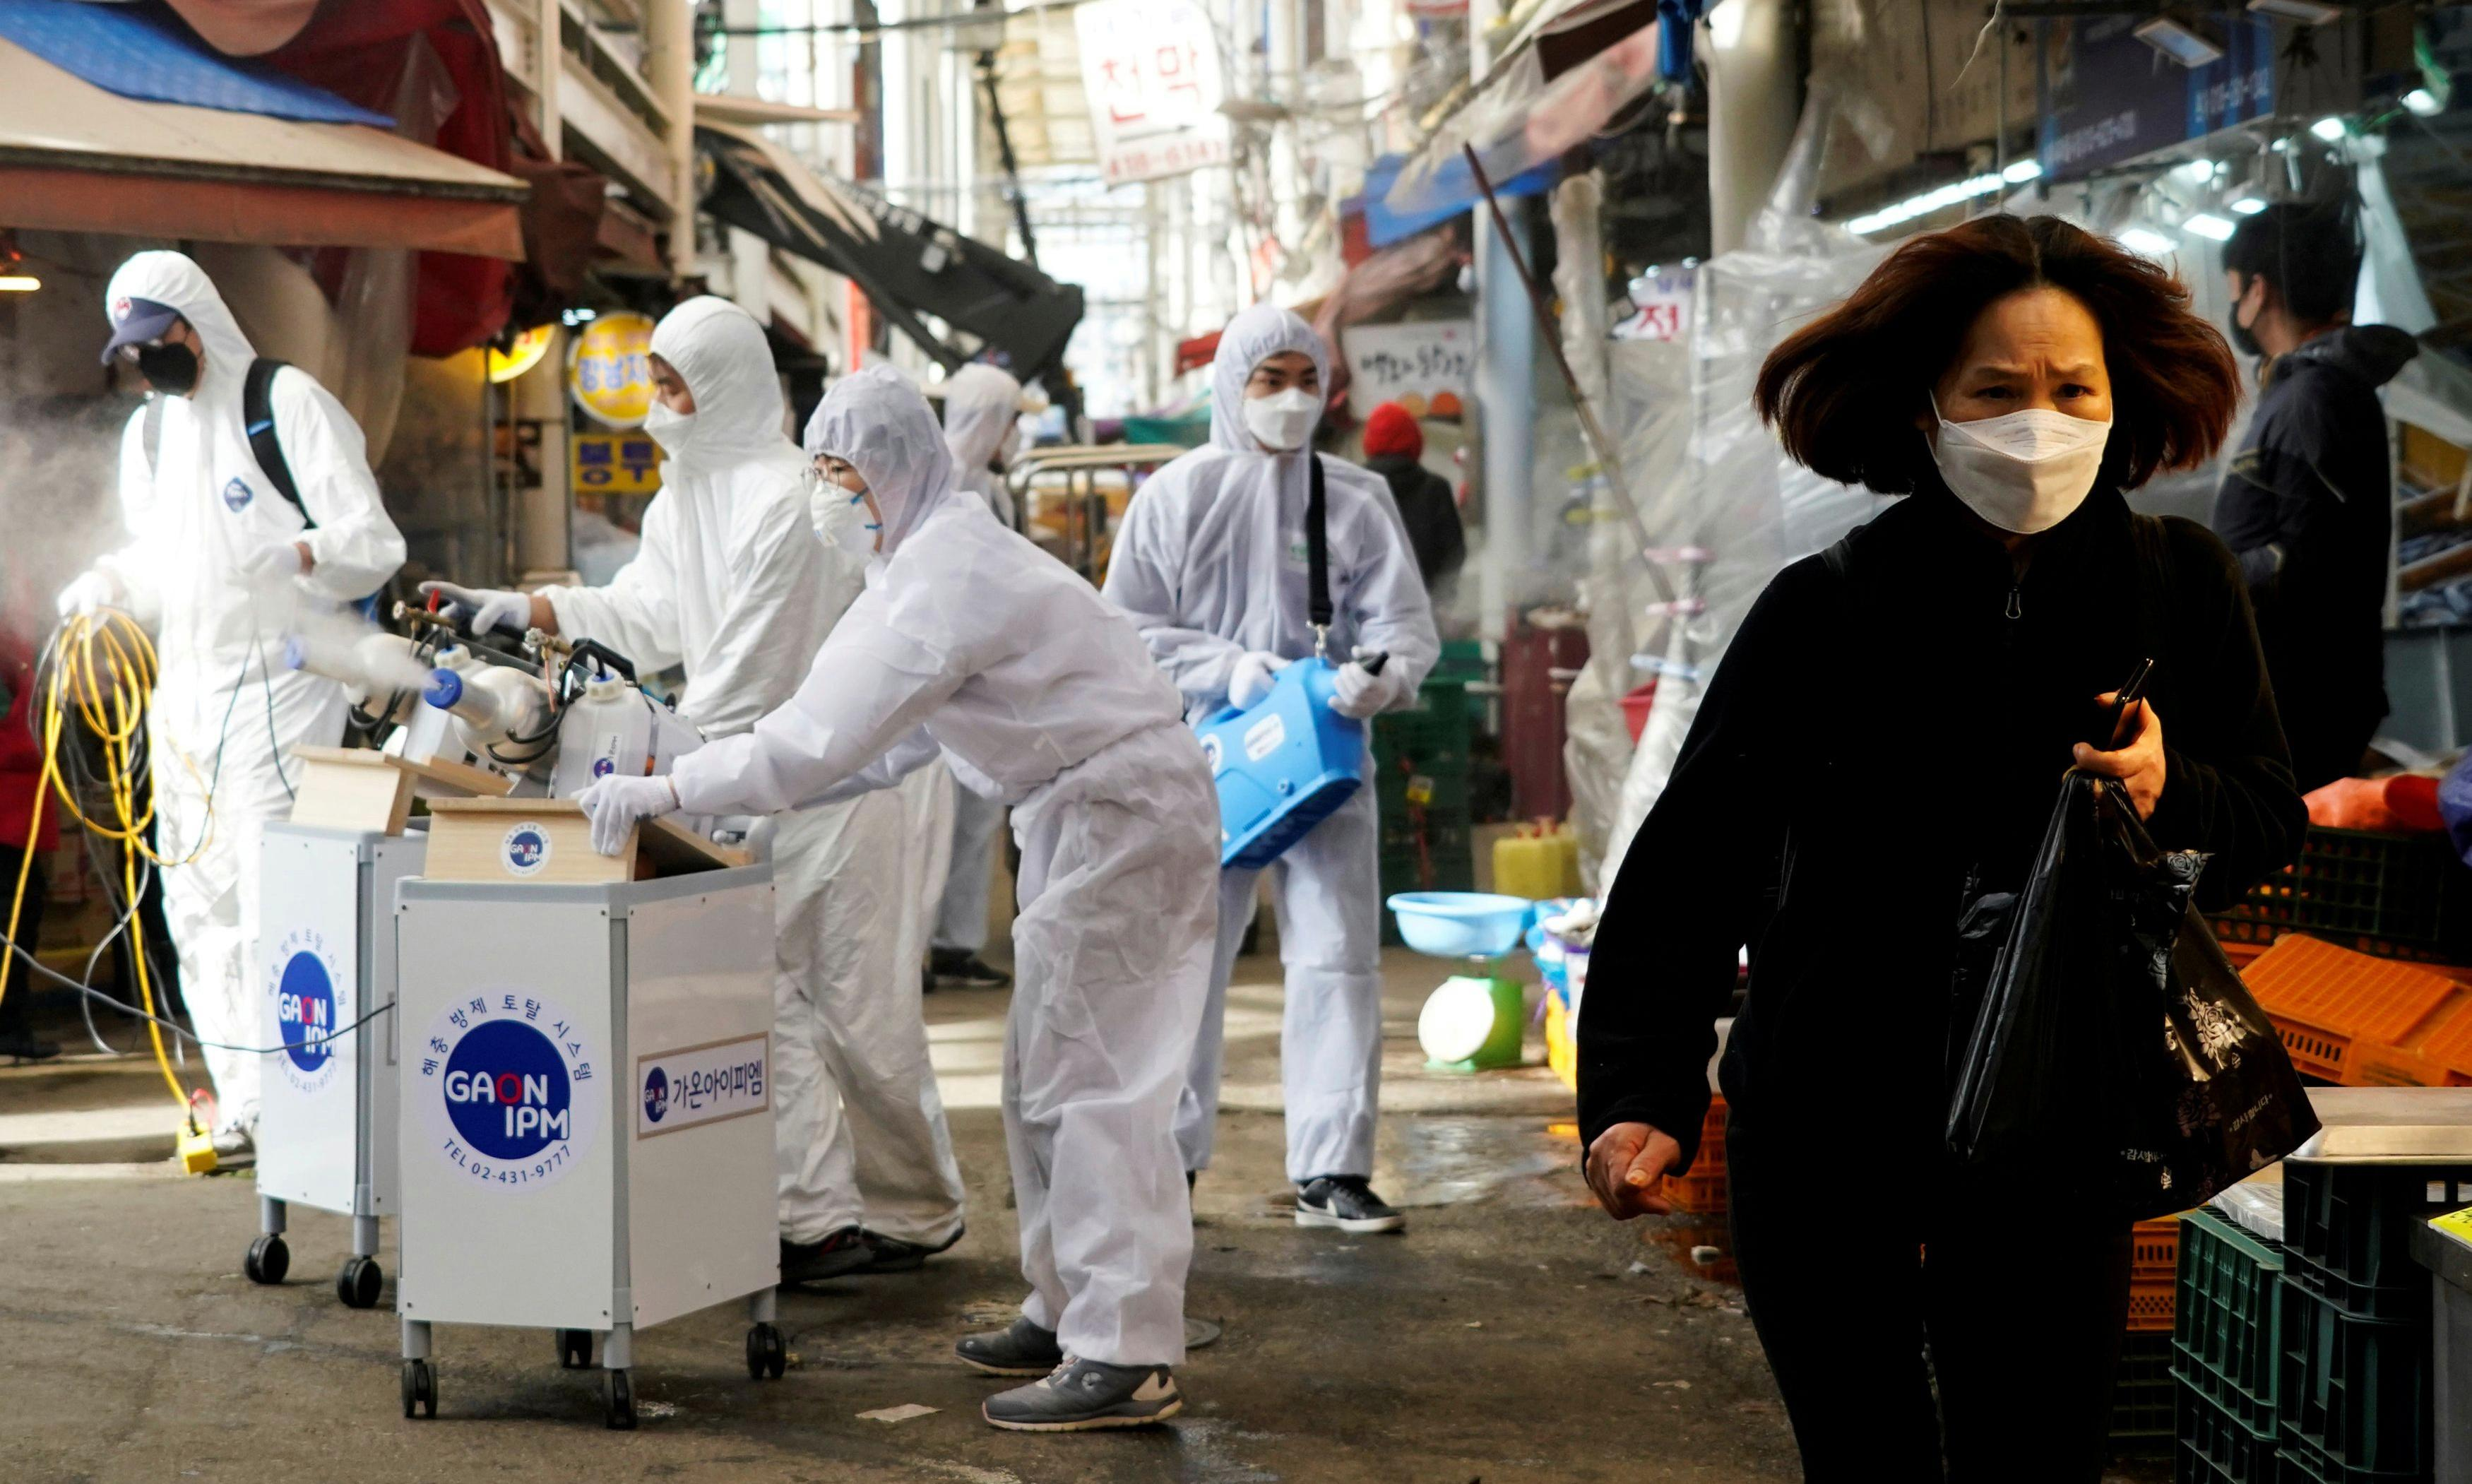 More new coronavirus cases outside China than inside, says WHO